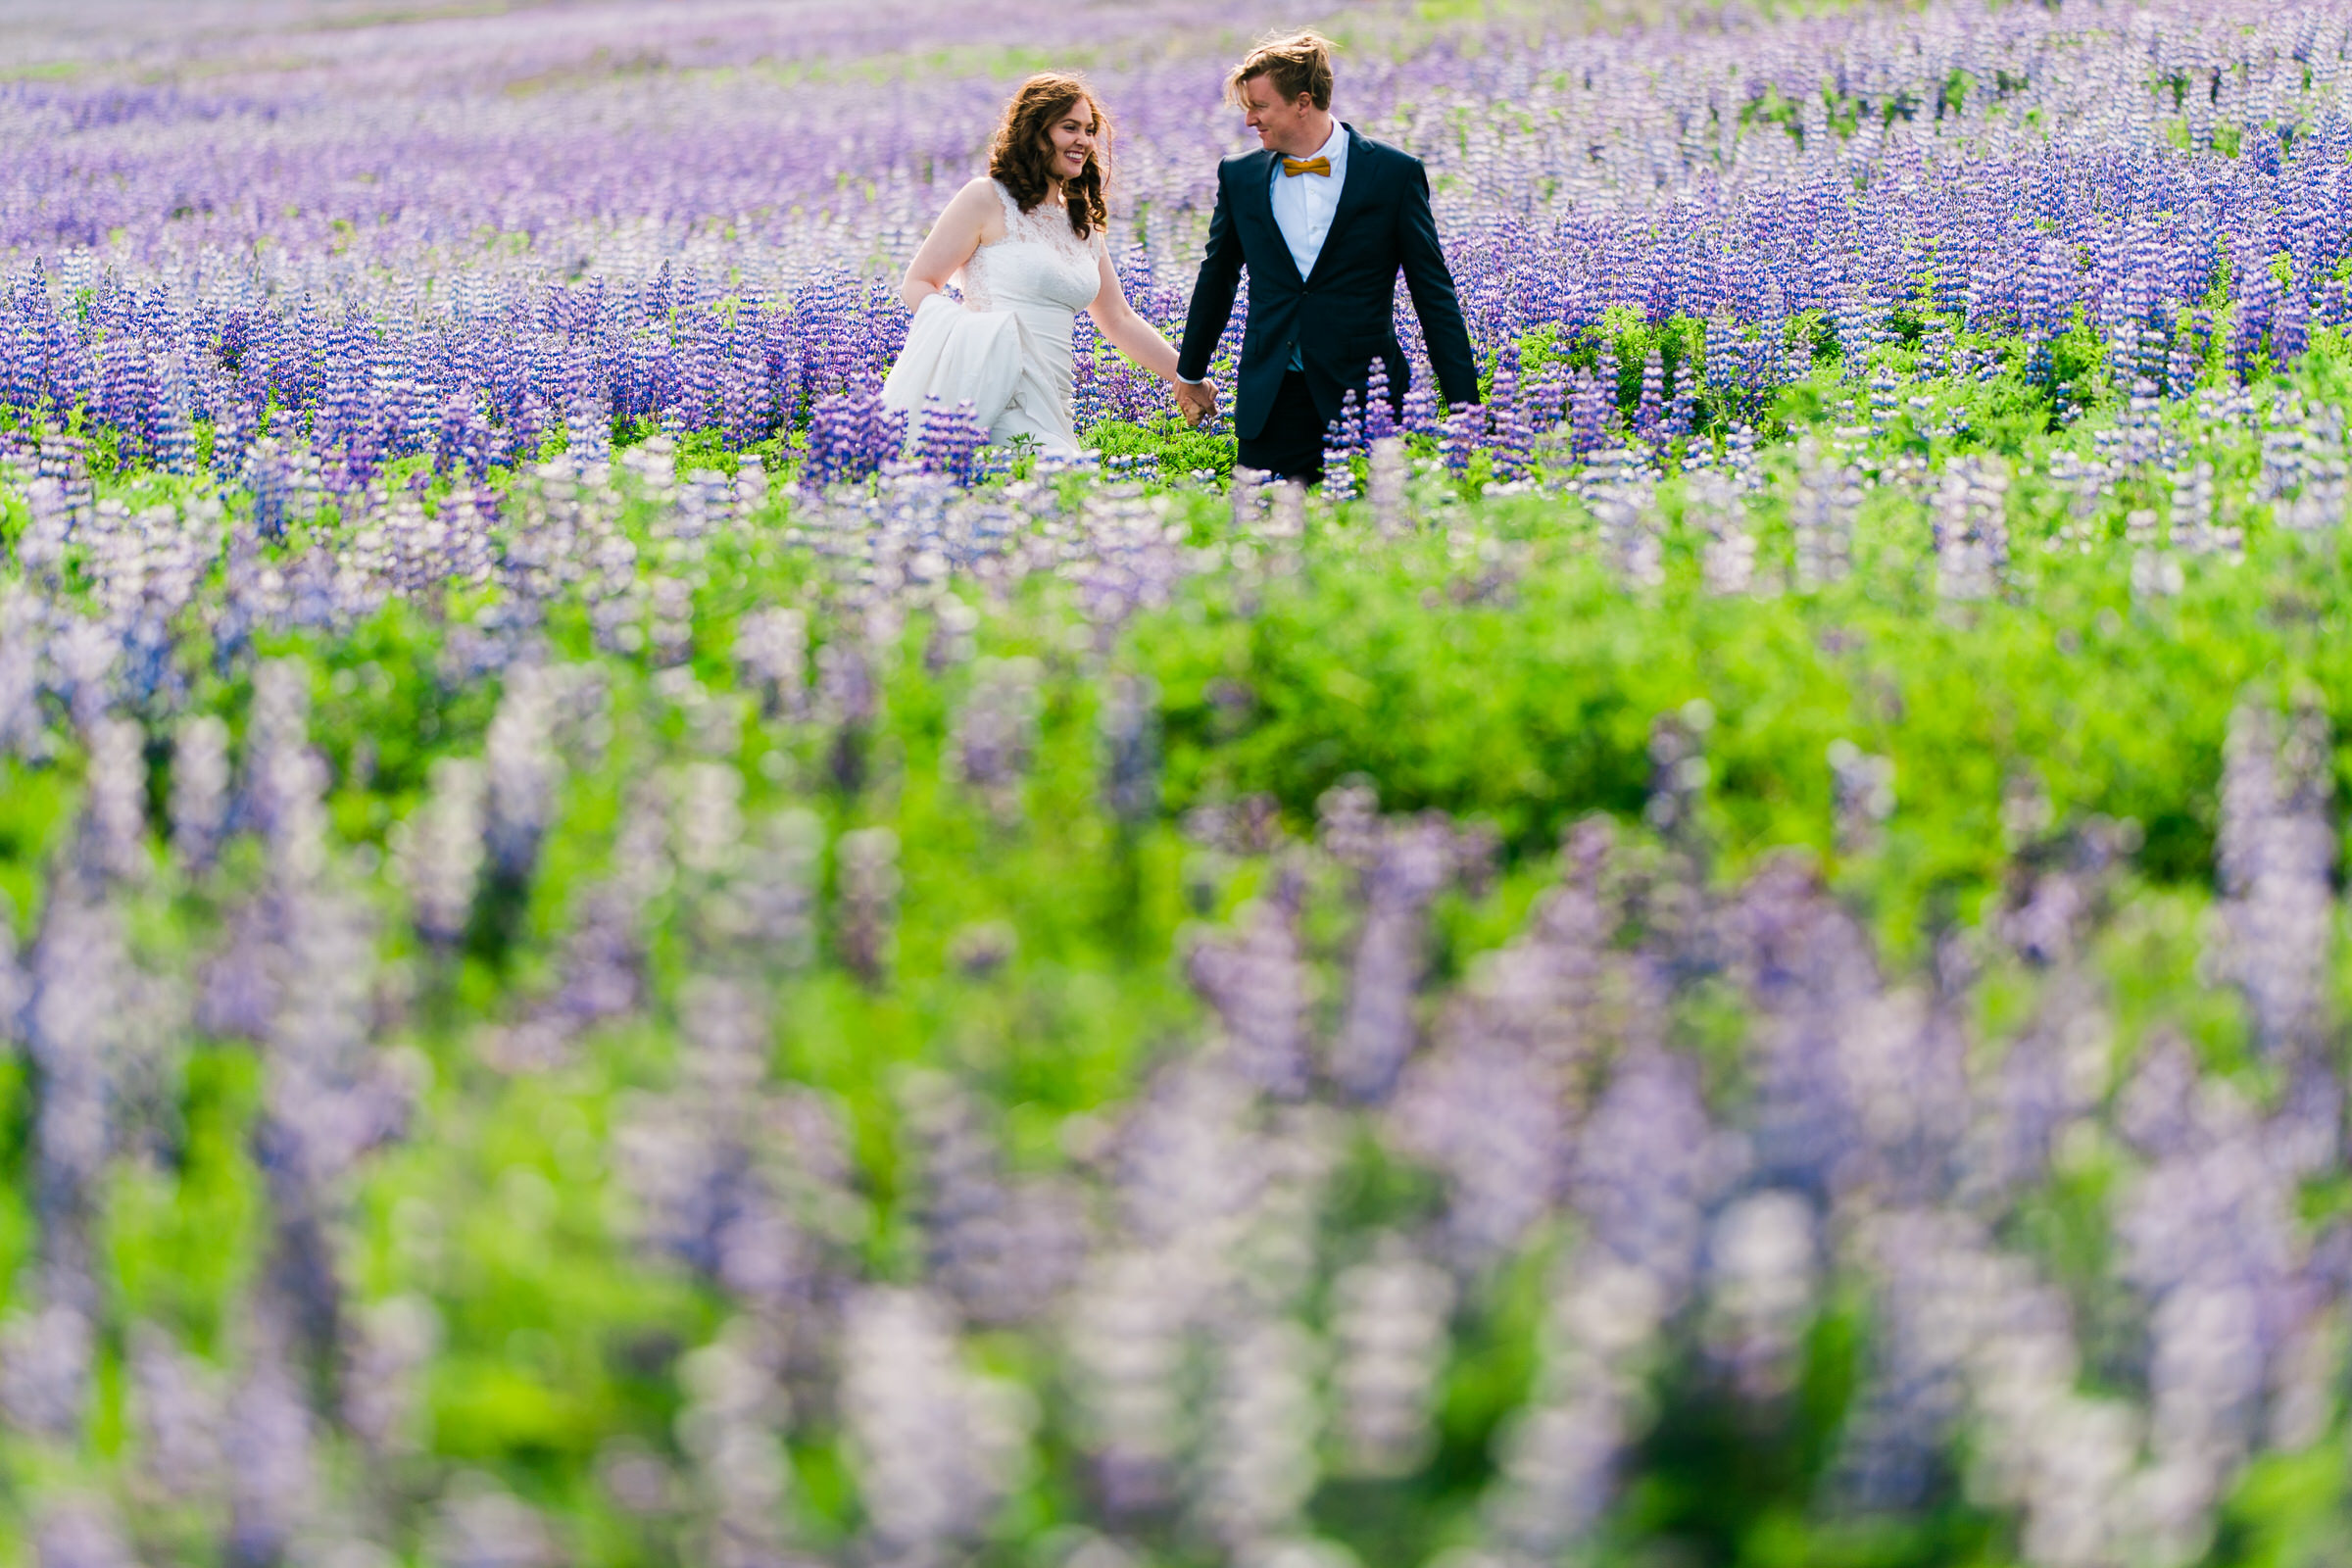 Elopement couple in field of flowers in Iceland - photo by M&J Studios